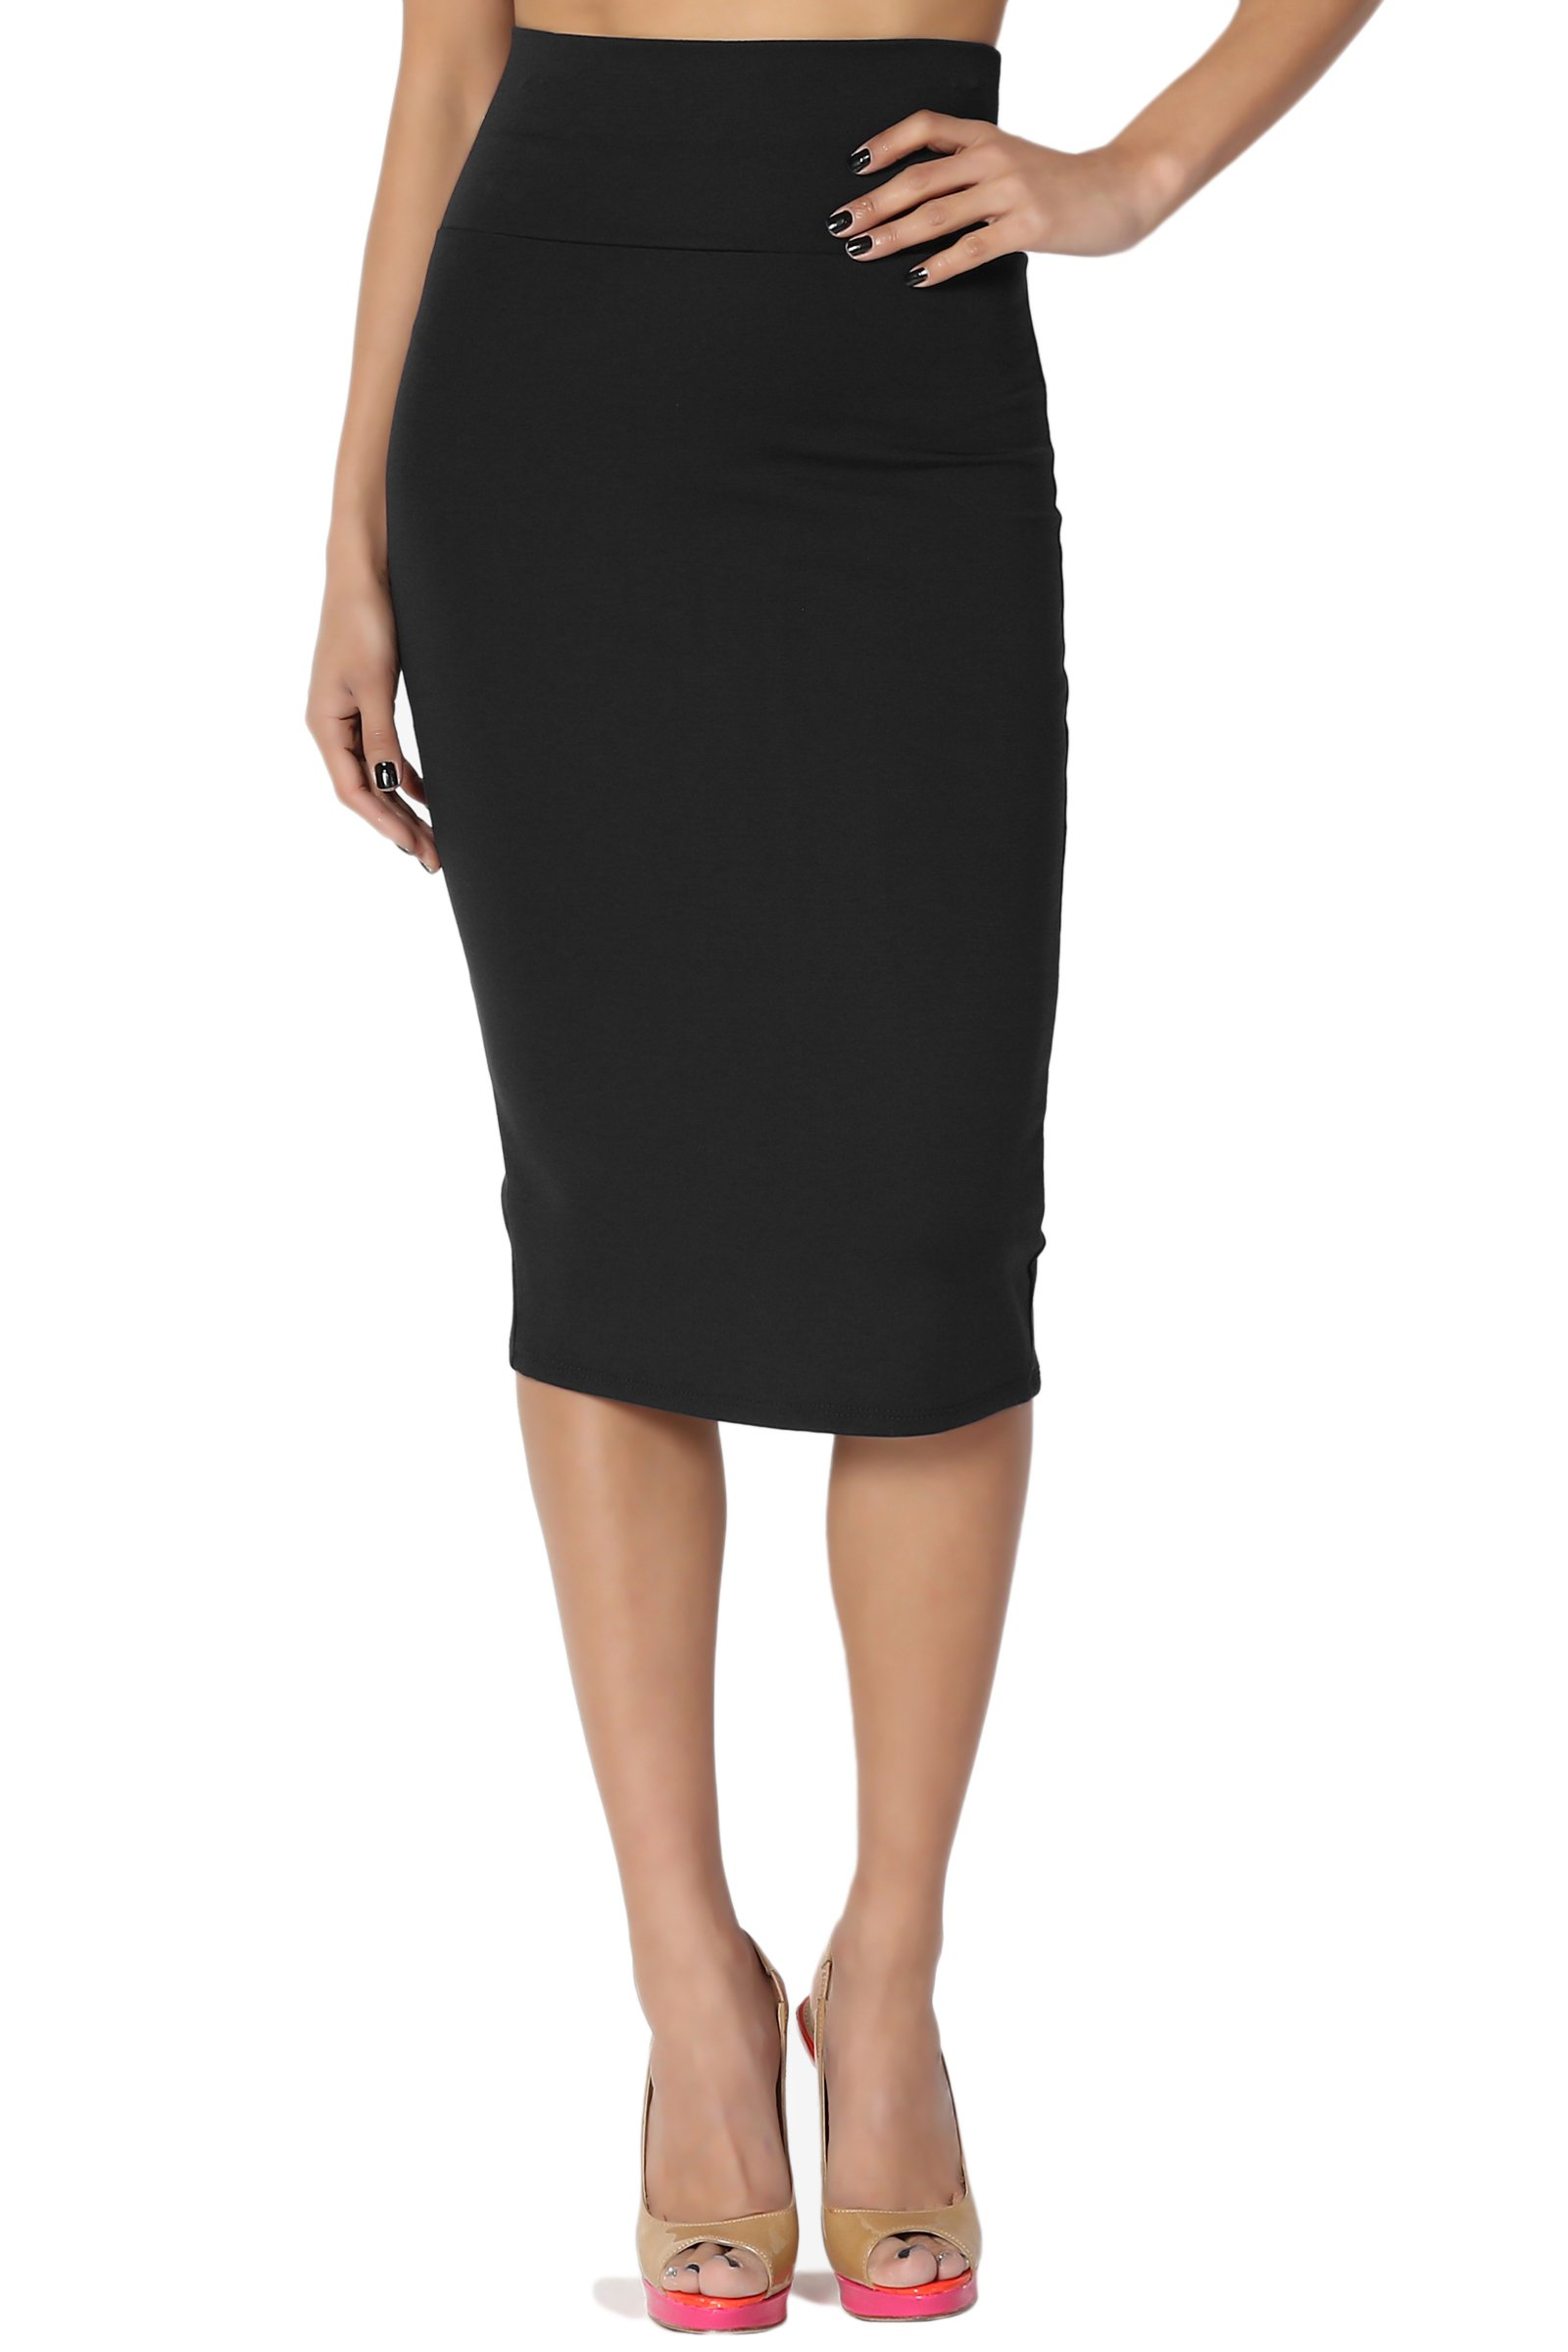 TheMogan Women's High Waisted Pull On Stretch Ponte Midi Pencil Skirt Black L